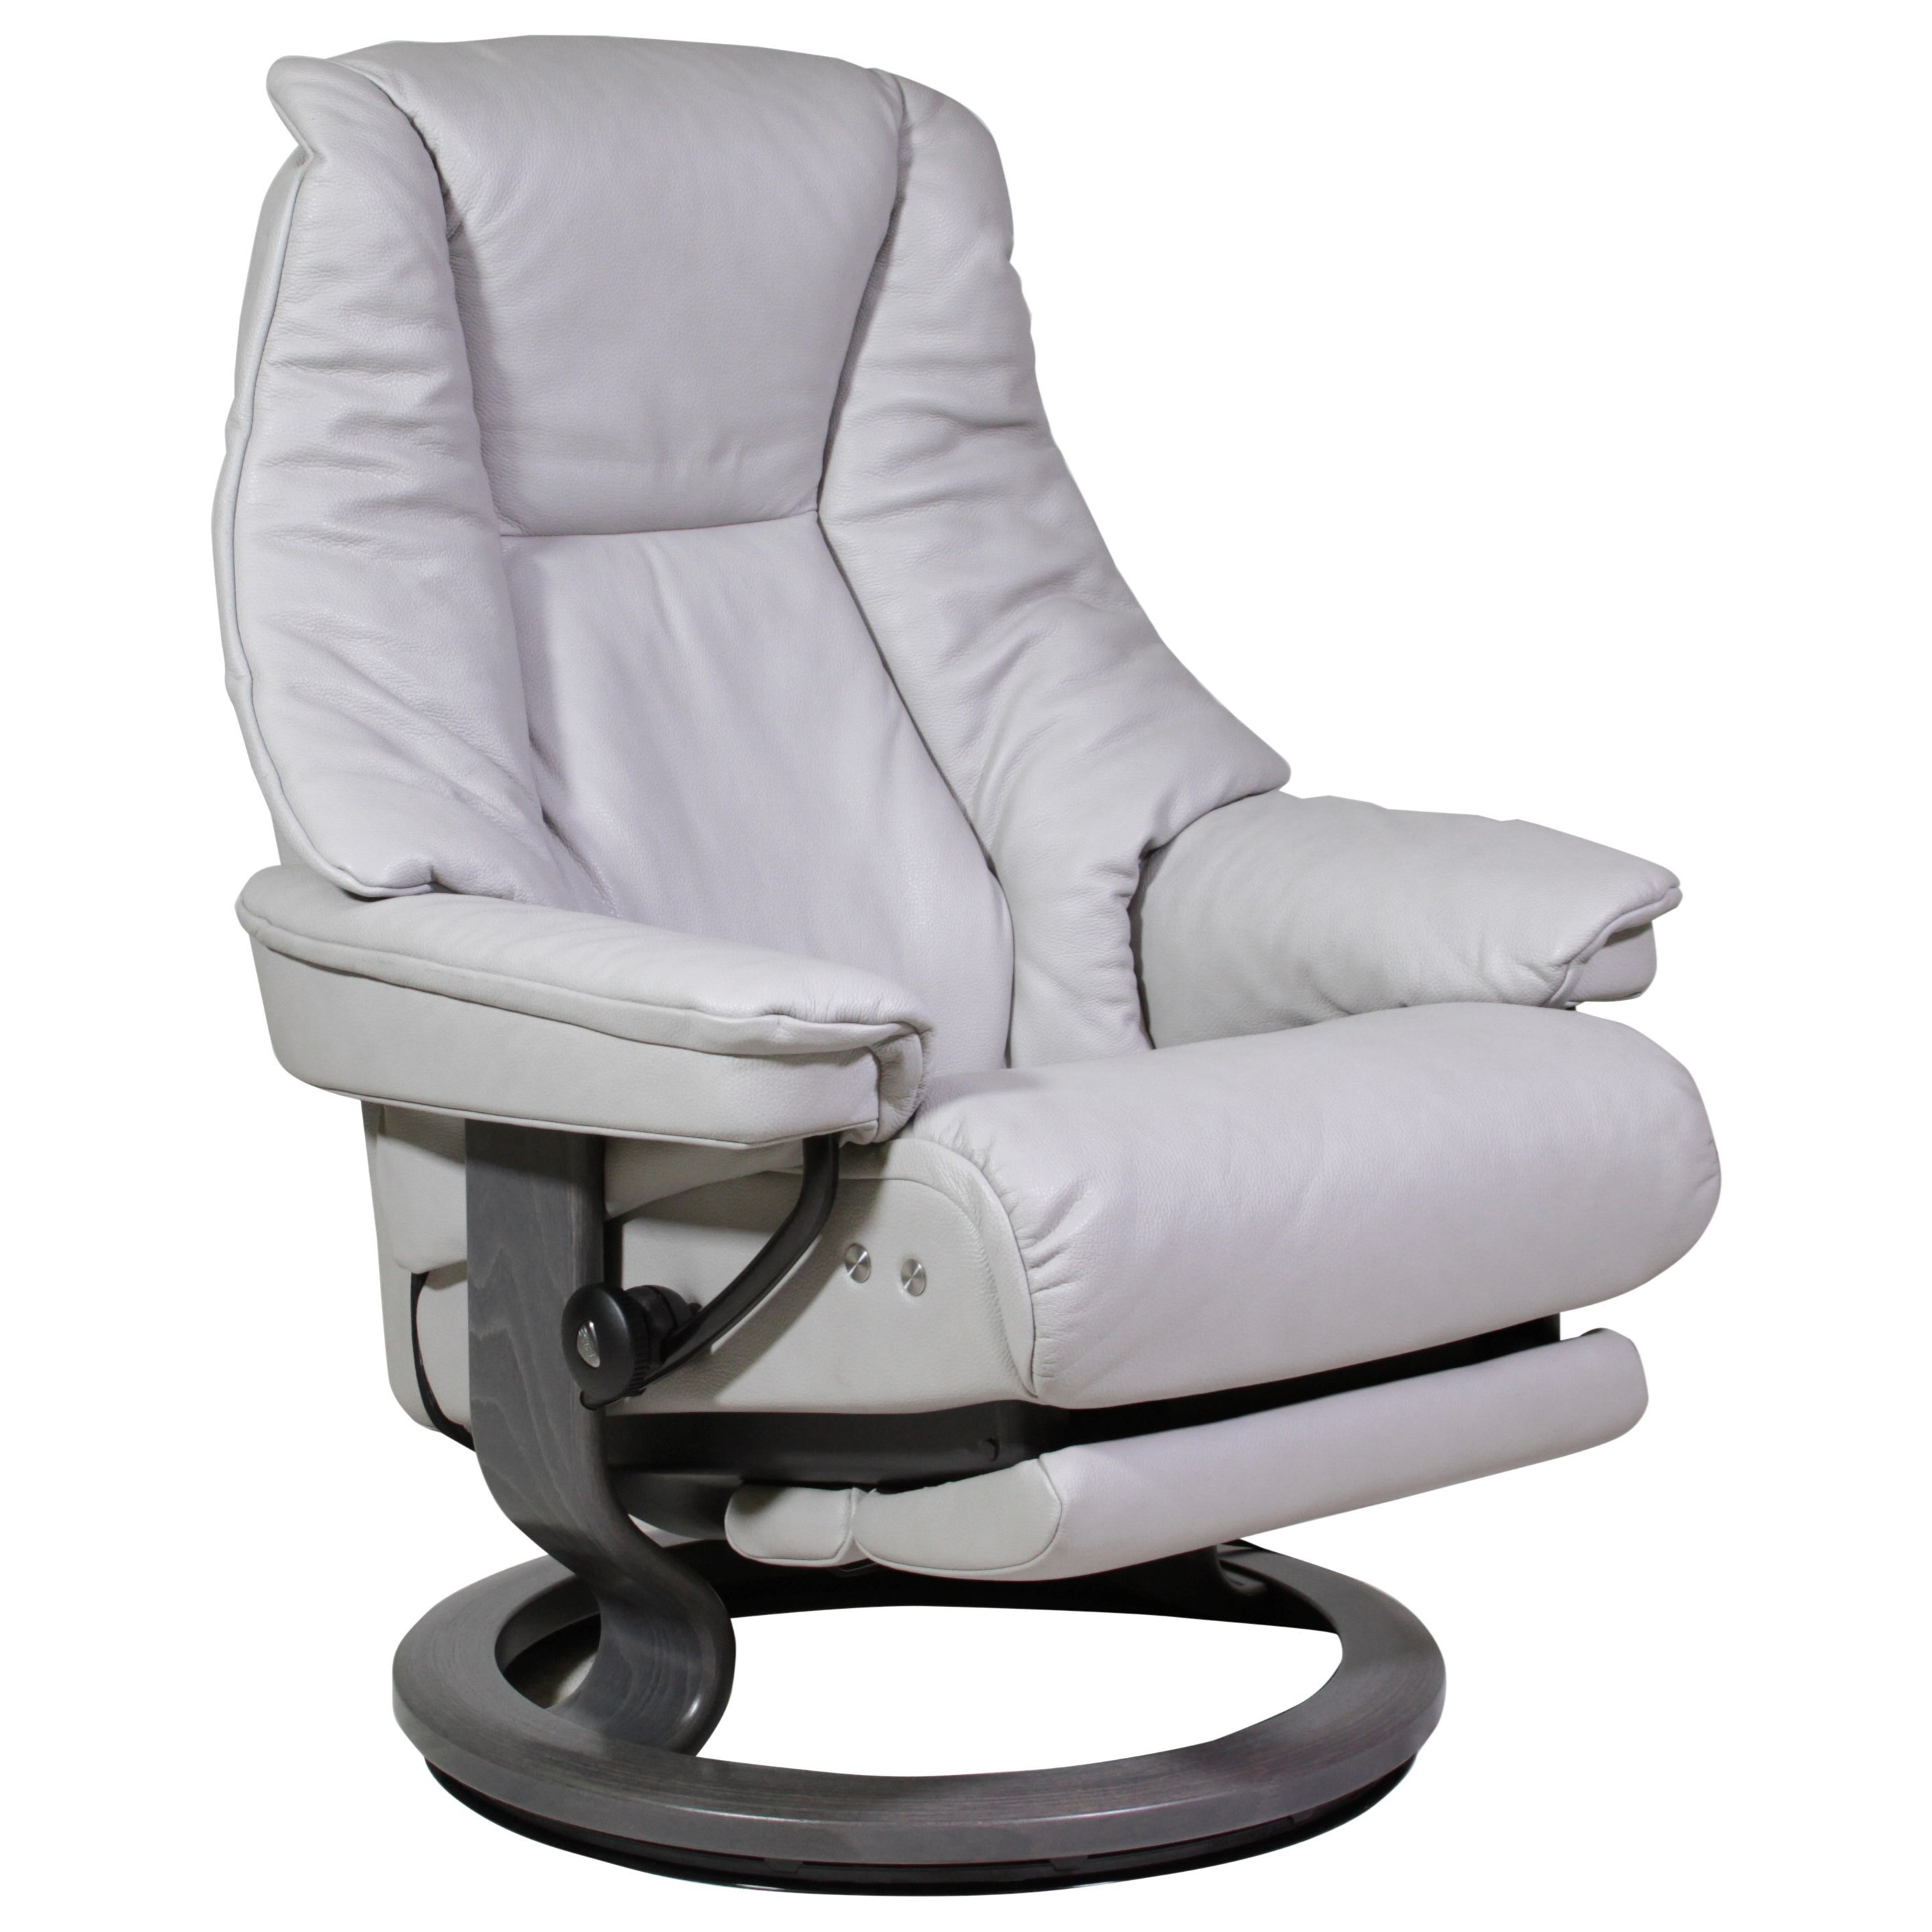 Stressless Outlet Live Medium Legcomfort Recliner By Stressless At Hudson S Furniture